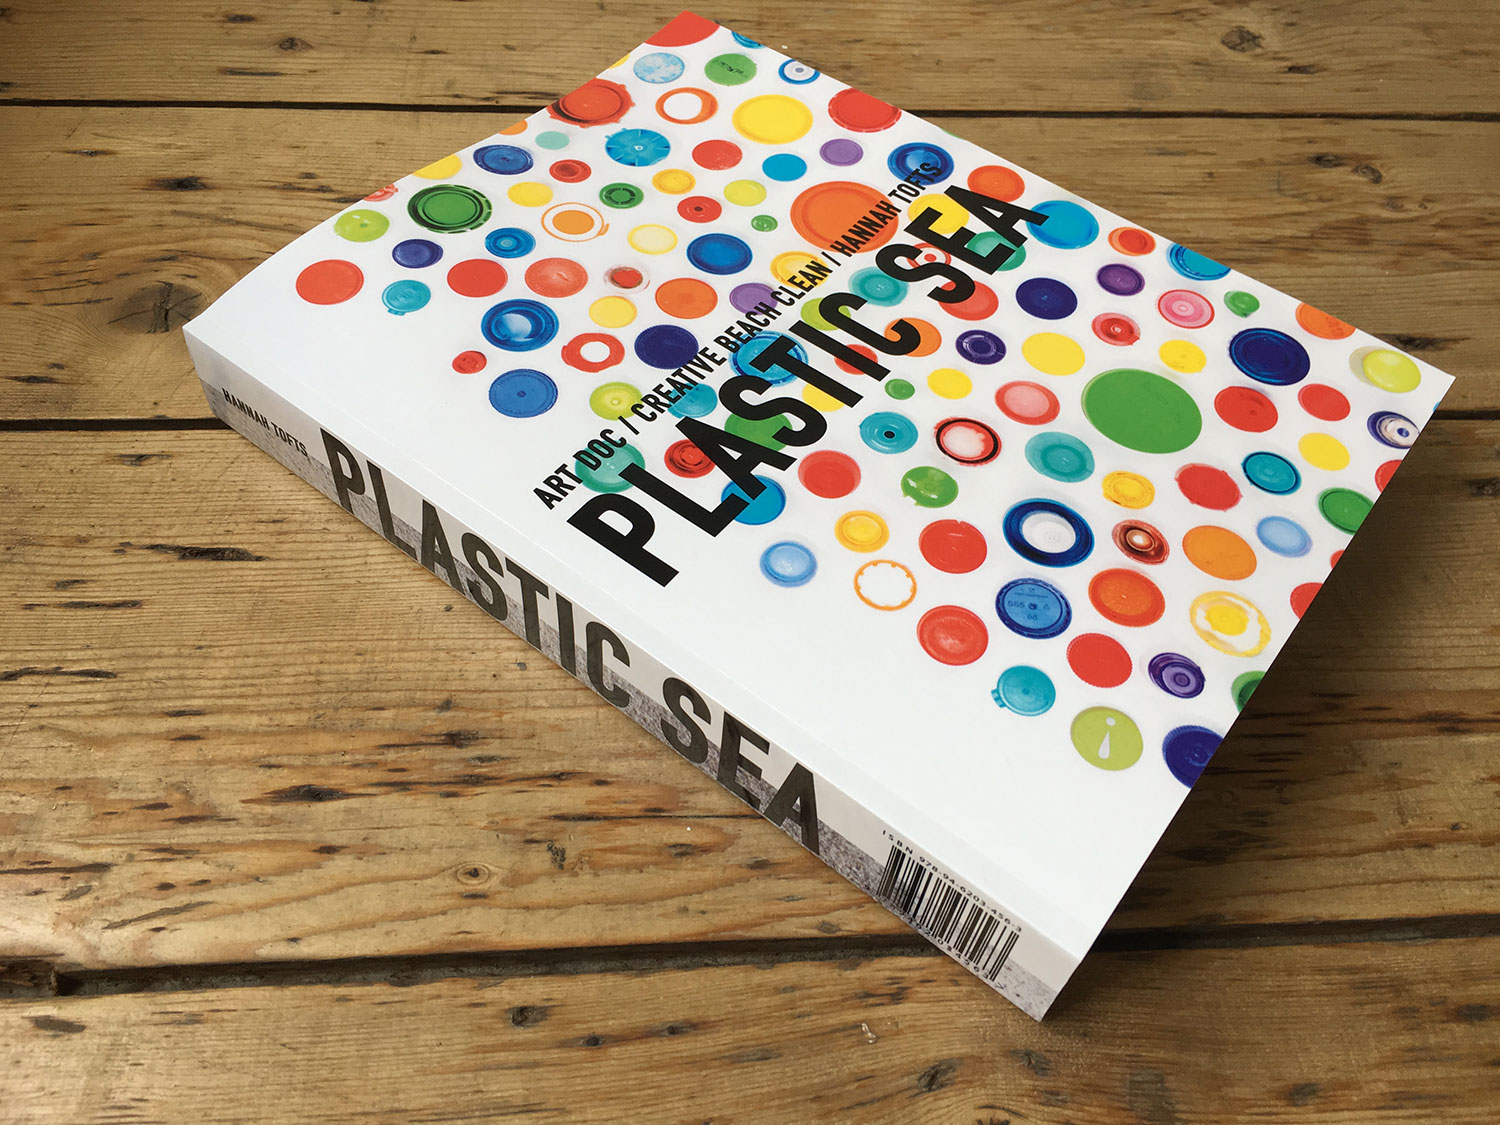 PLASTIC SEA / ART DOC / CREATIVE BEACH CLEAN new 652 page book!